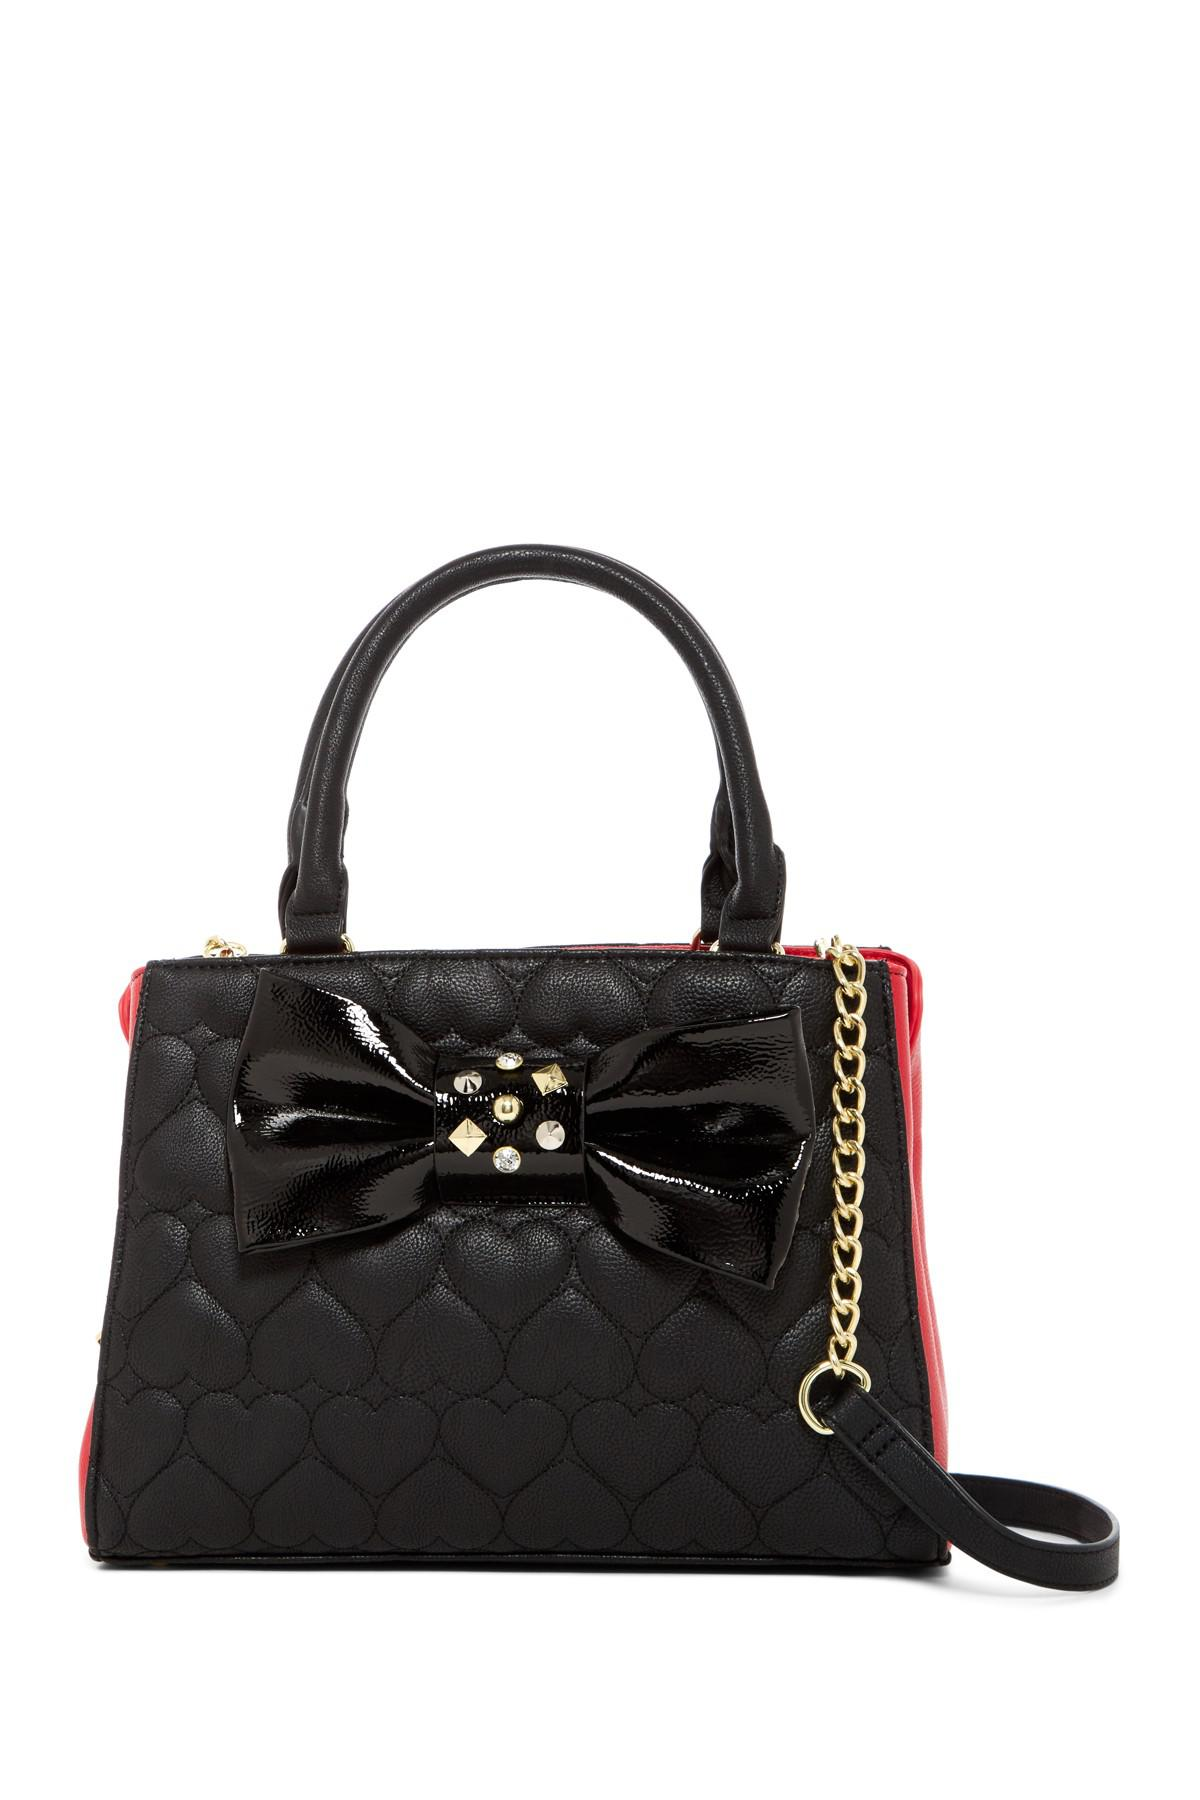 8993d4c2079 Lyst - Betsey Johnson Heart Quilted Bow Bowler Satchel in Black